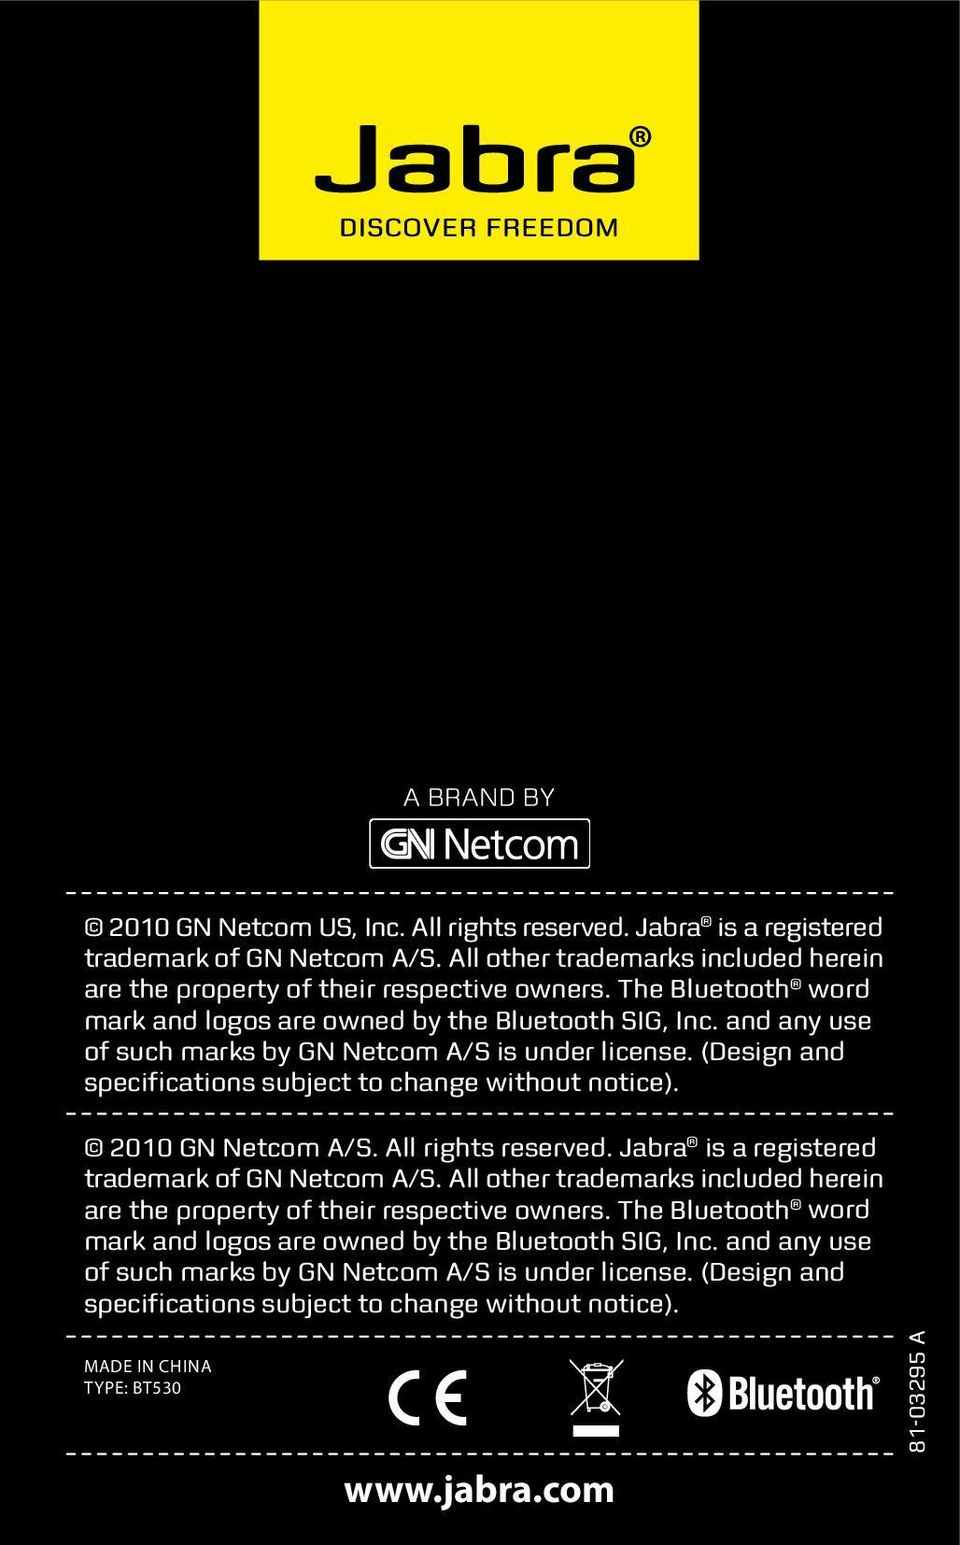 2010 GN Netcom A/S. All rights reserved. Jabra is a registered trademark of GN Netcom A/S. All other trademarks included herein are the property of their respective owners.